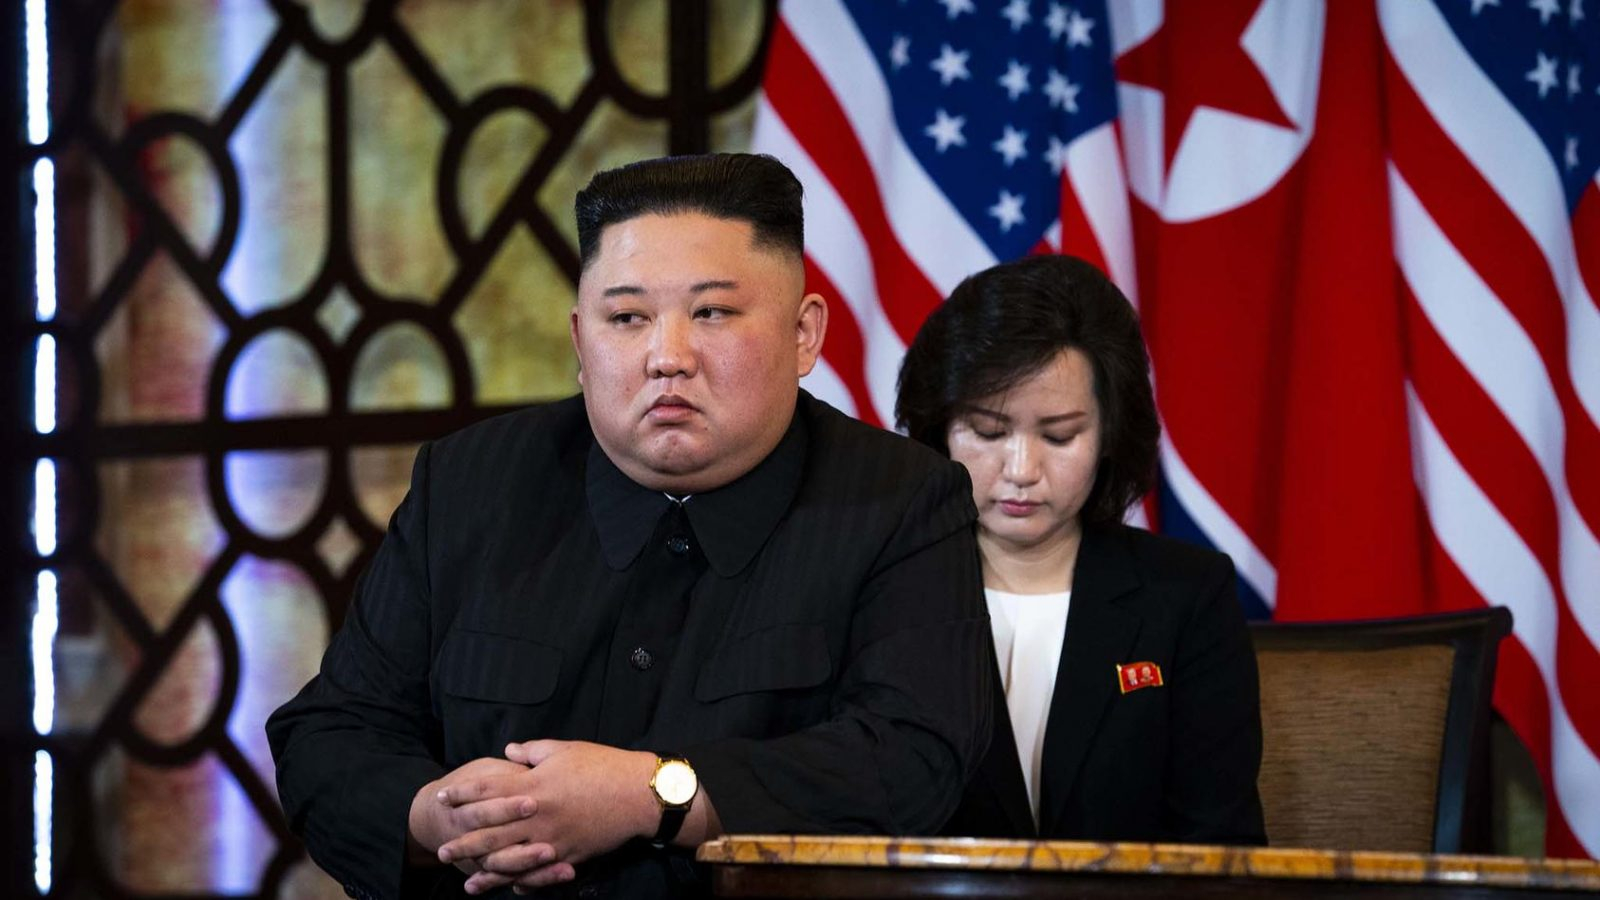 Kim Jon-un sits at the front of a table with a woman behind him and North Korean and American flags in the background.